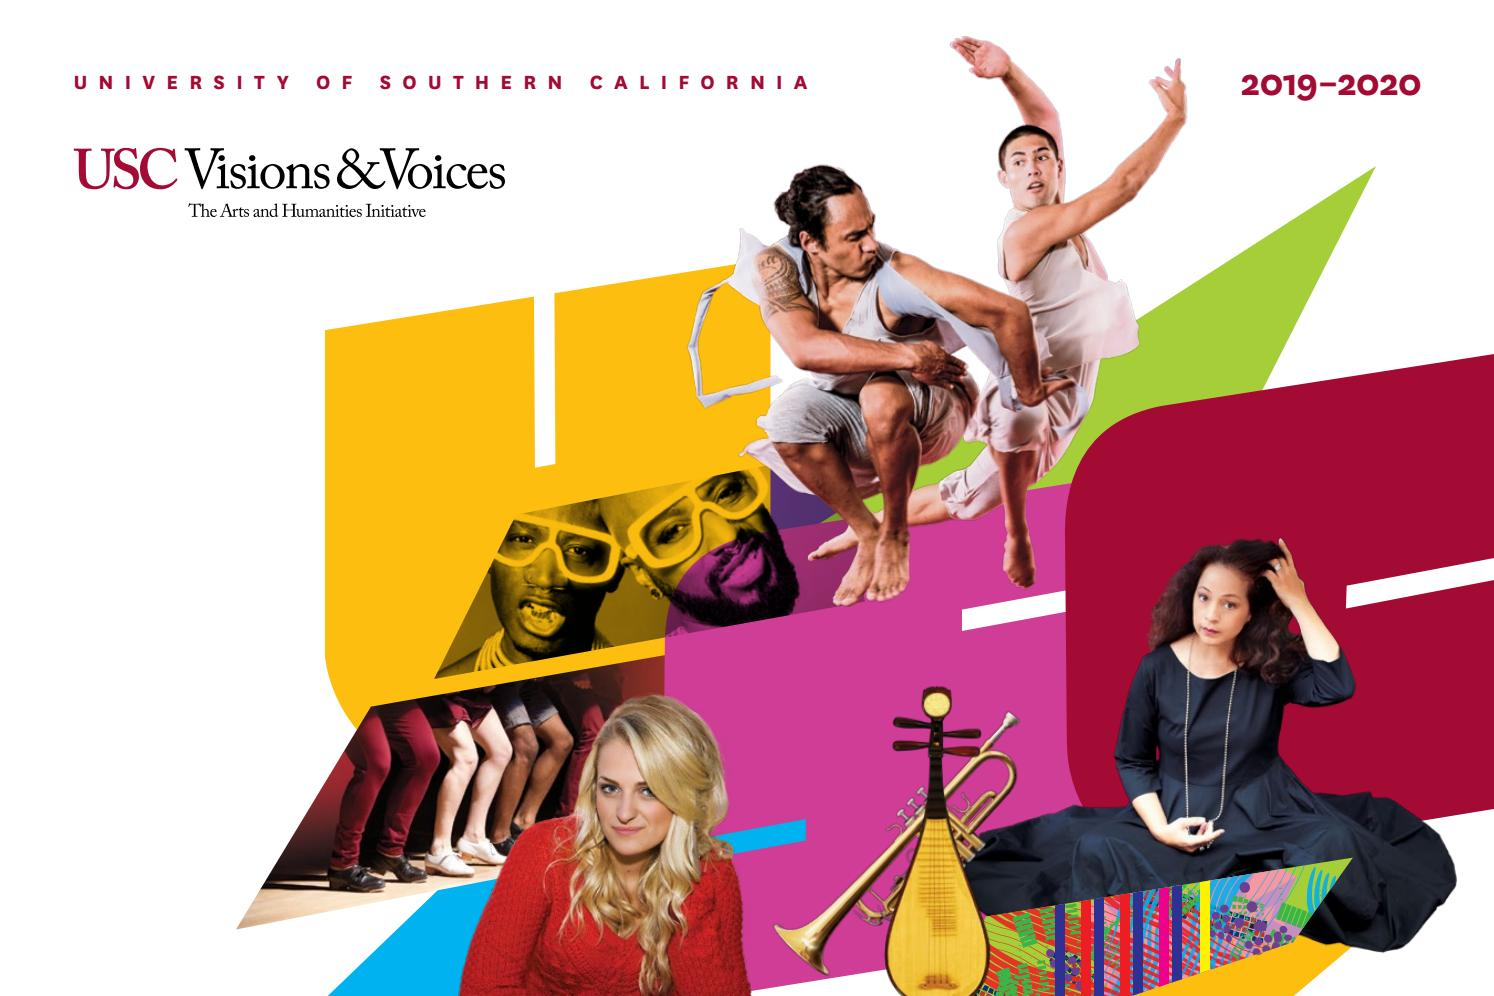 USC Visions & Voices 2019-2020 by University of Southern